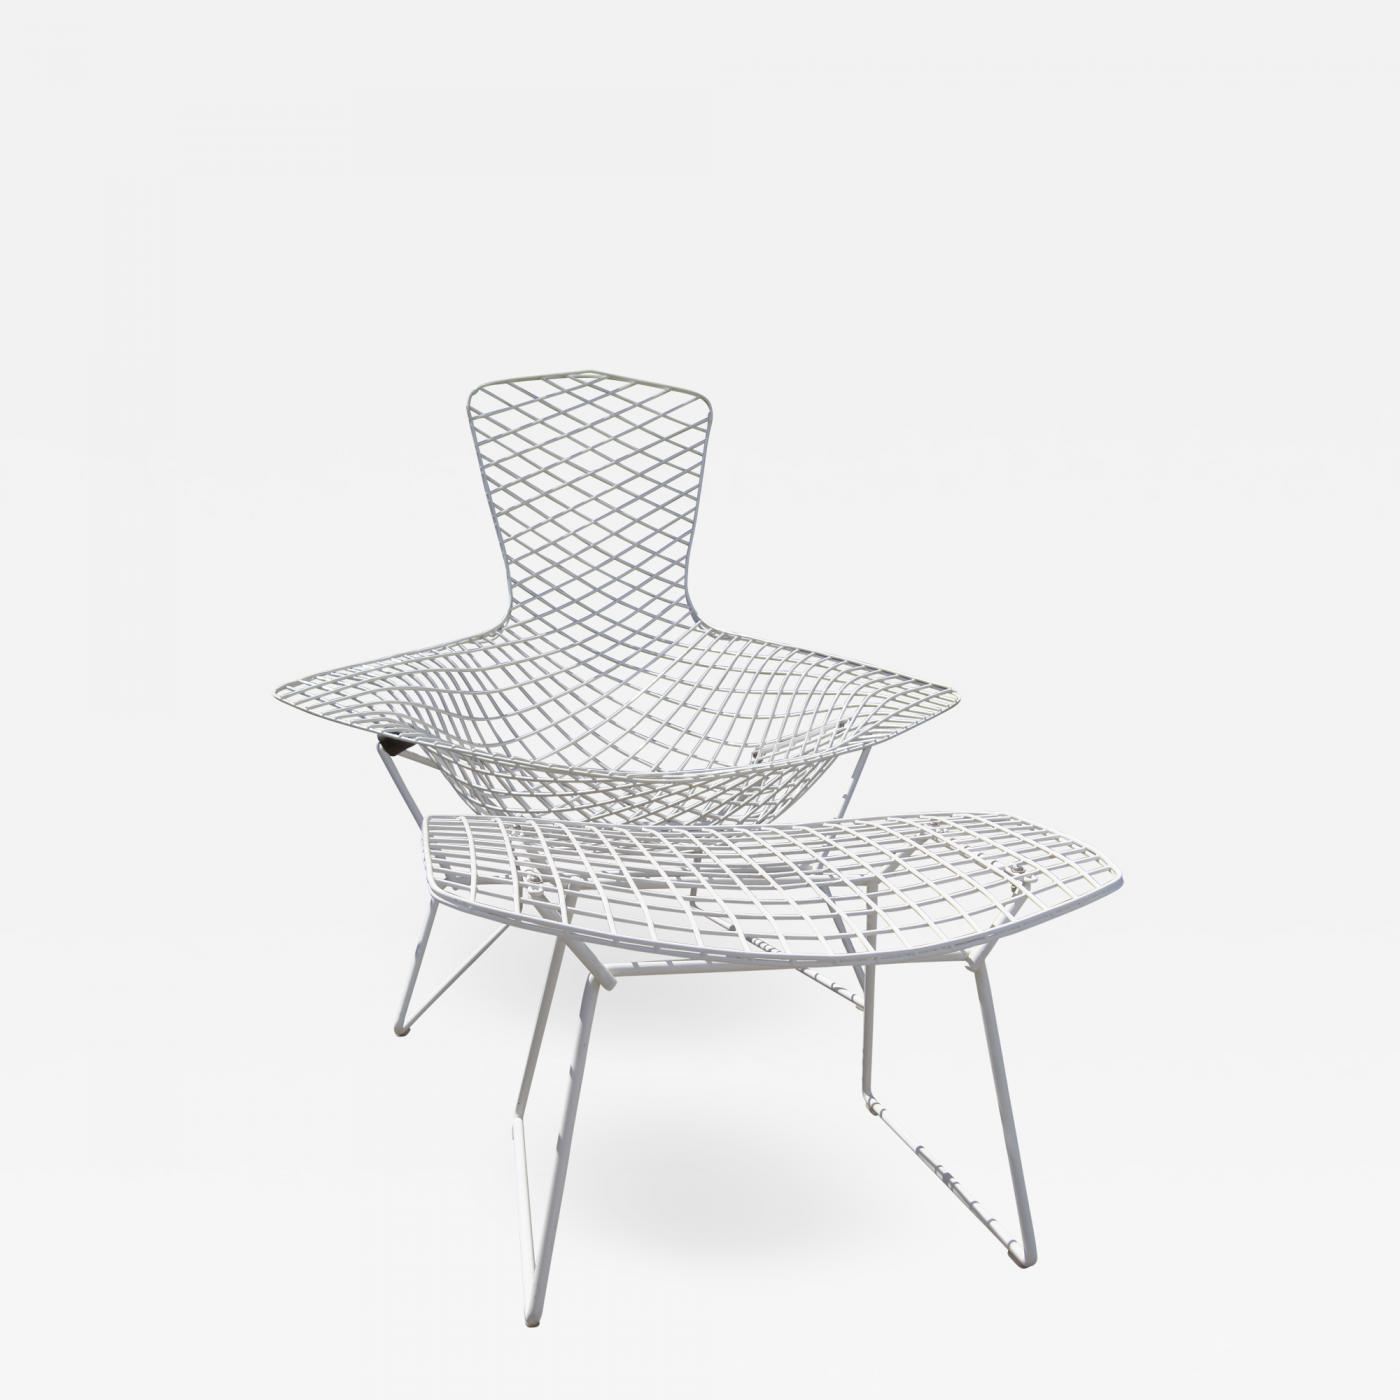 Listings / Furniture / Seating / Lounge Chairs · Harry Bertoia Bird ...  sc 1 st  Incollect & Harry Bertoia - Bird Chair and Ottoman by Harry Bertoia for Knoll